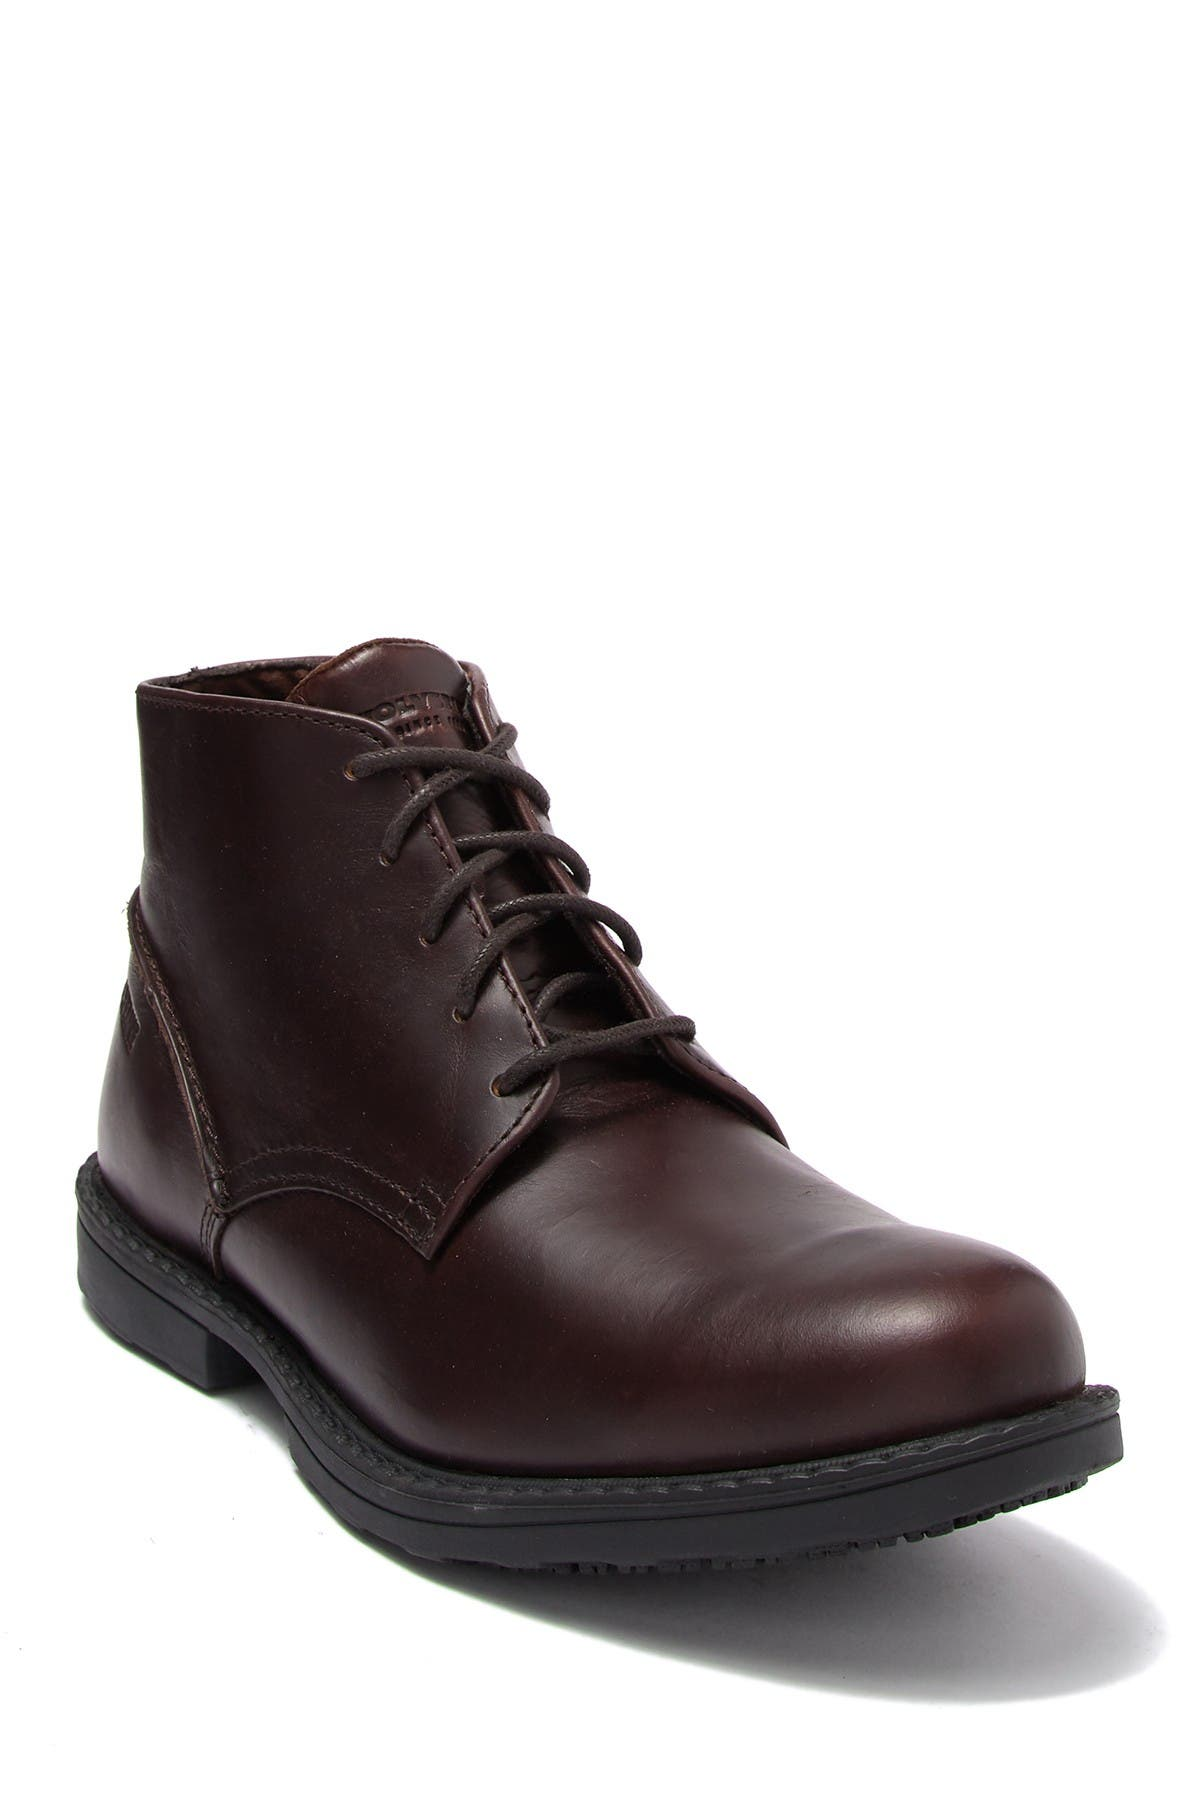 Wolverine | Bedford Leather Chukka Boot